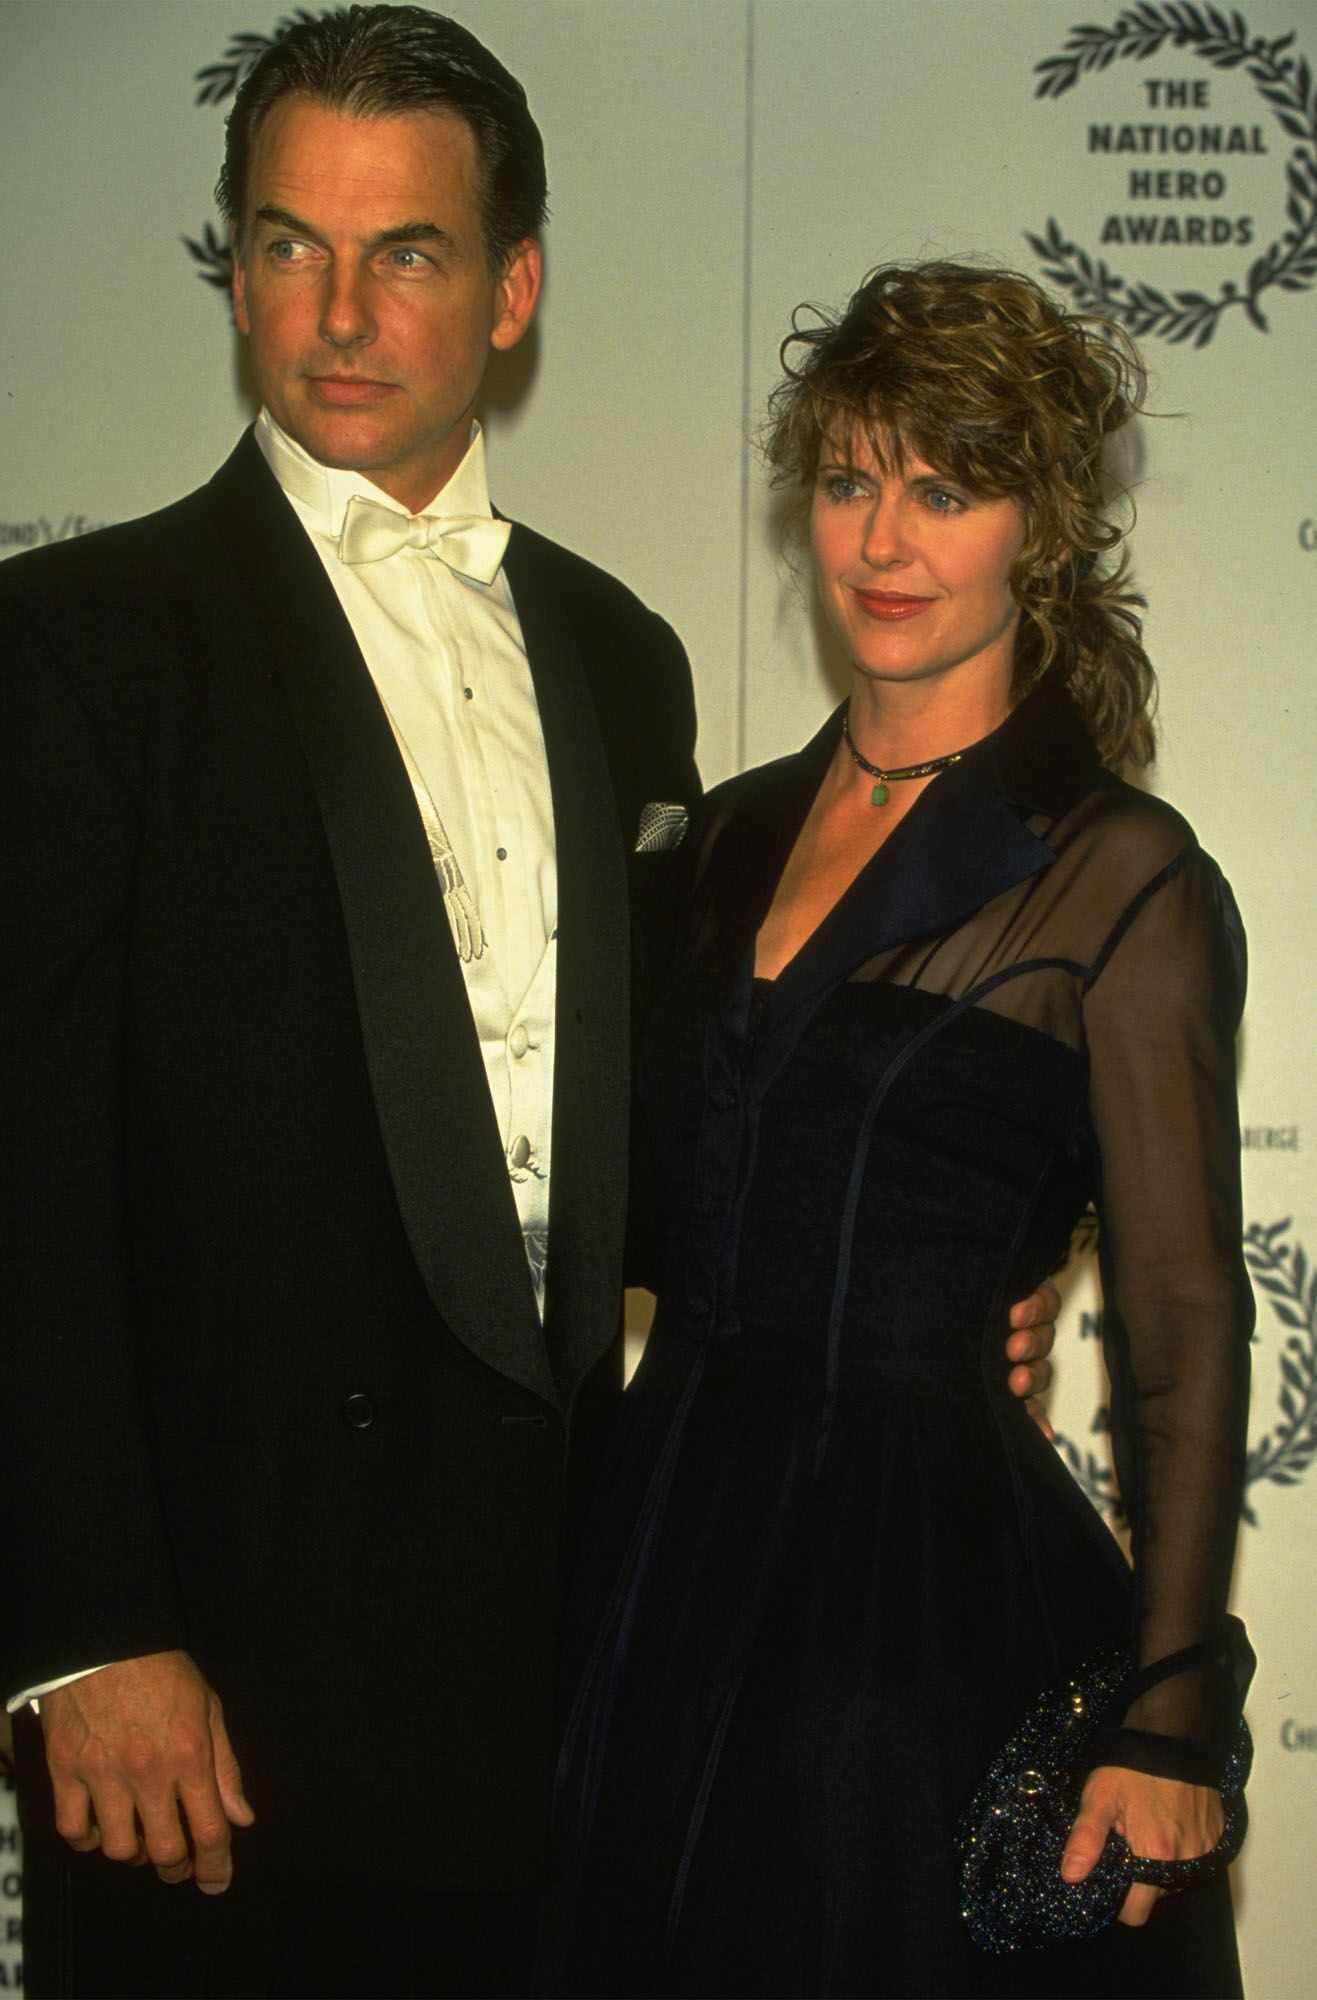 Mark Harmon and Pam Dawber at the National Hero Awards | Getty Images